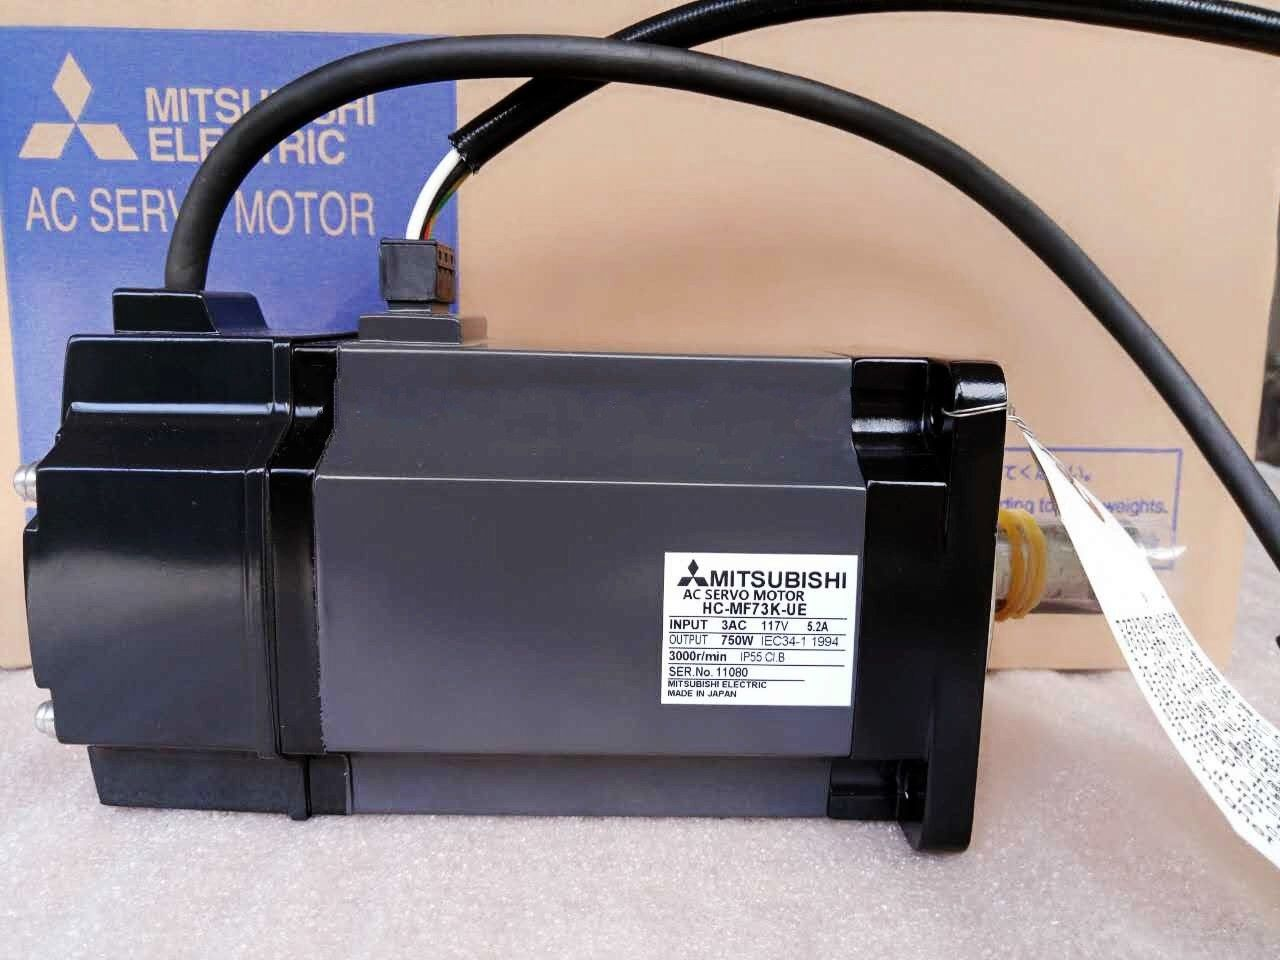 MITSUBISHI SERVO MOTOR HC-MF73K-UE NEW in box HCMF73KUE